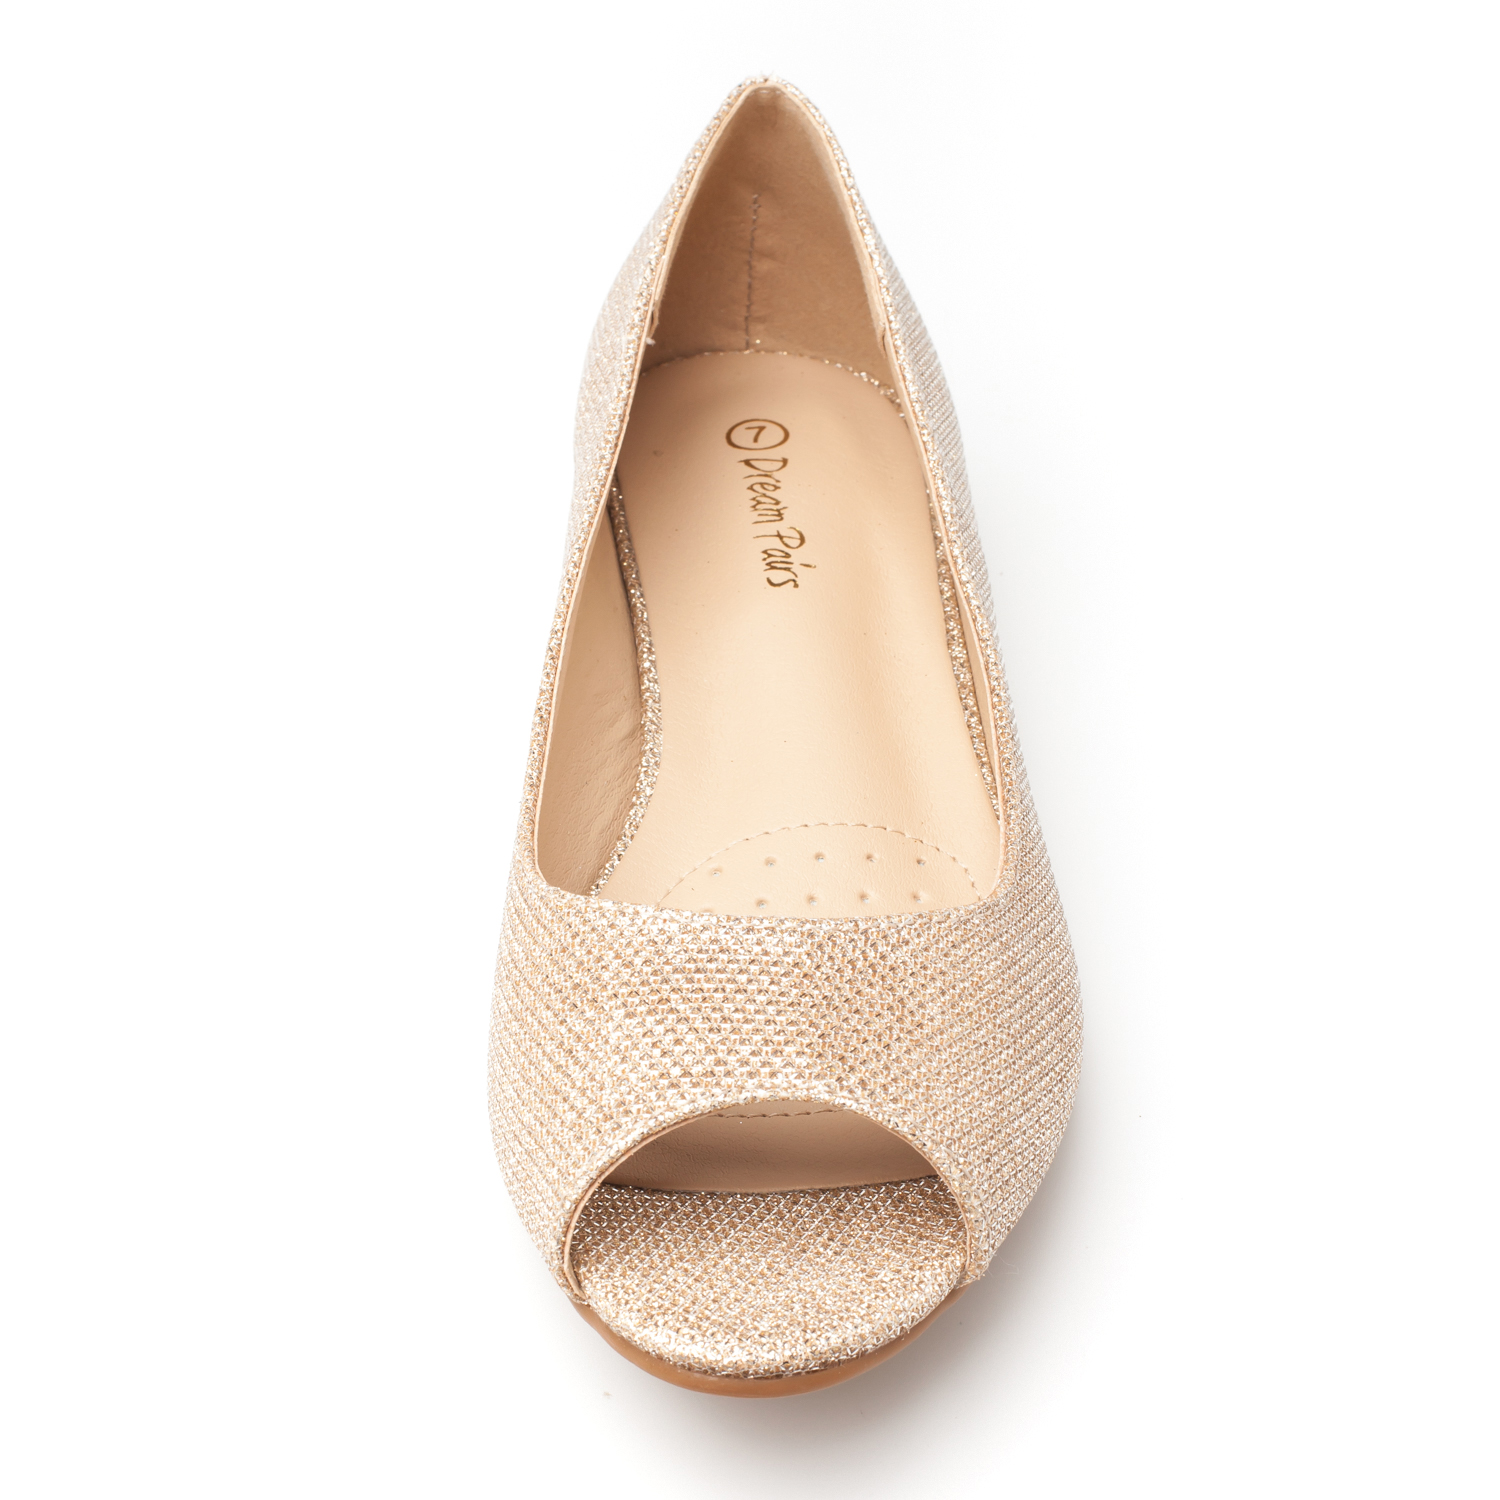 DREAM-PAIRS-Womens-Ballet-Flats-Low-Heel-Open-Toe-Slip-On-Dress-Flat-Shoes thumbnail 21